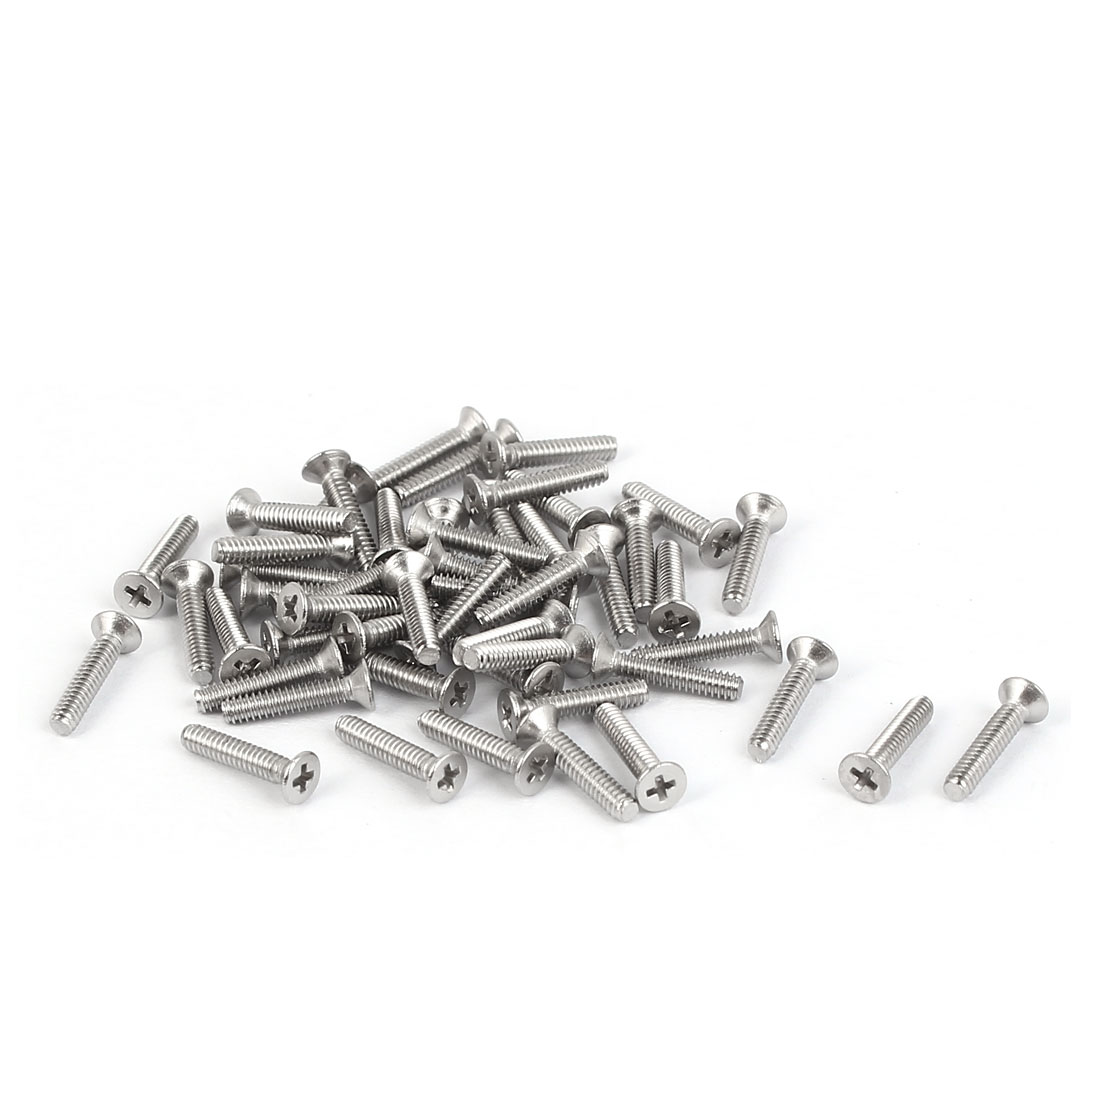 50 Pcs M1.6x8mm 316 Stainless Steel Flat Head Phillips Machine Screws Blots